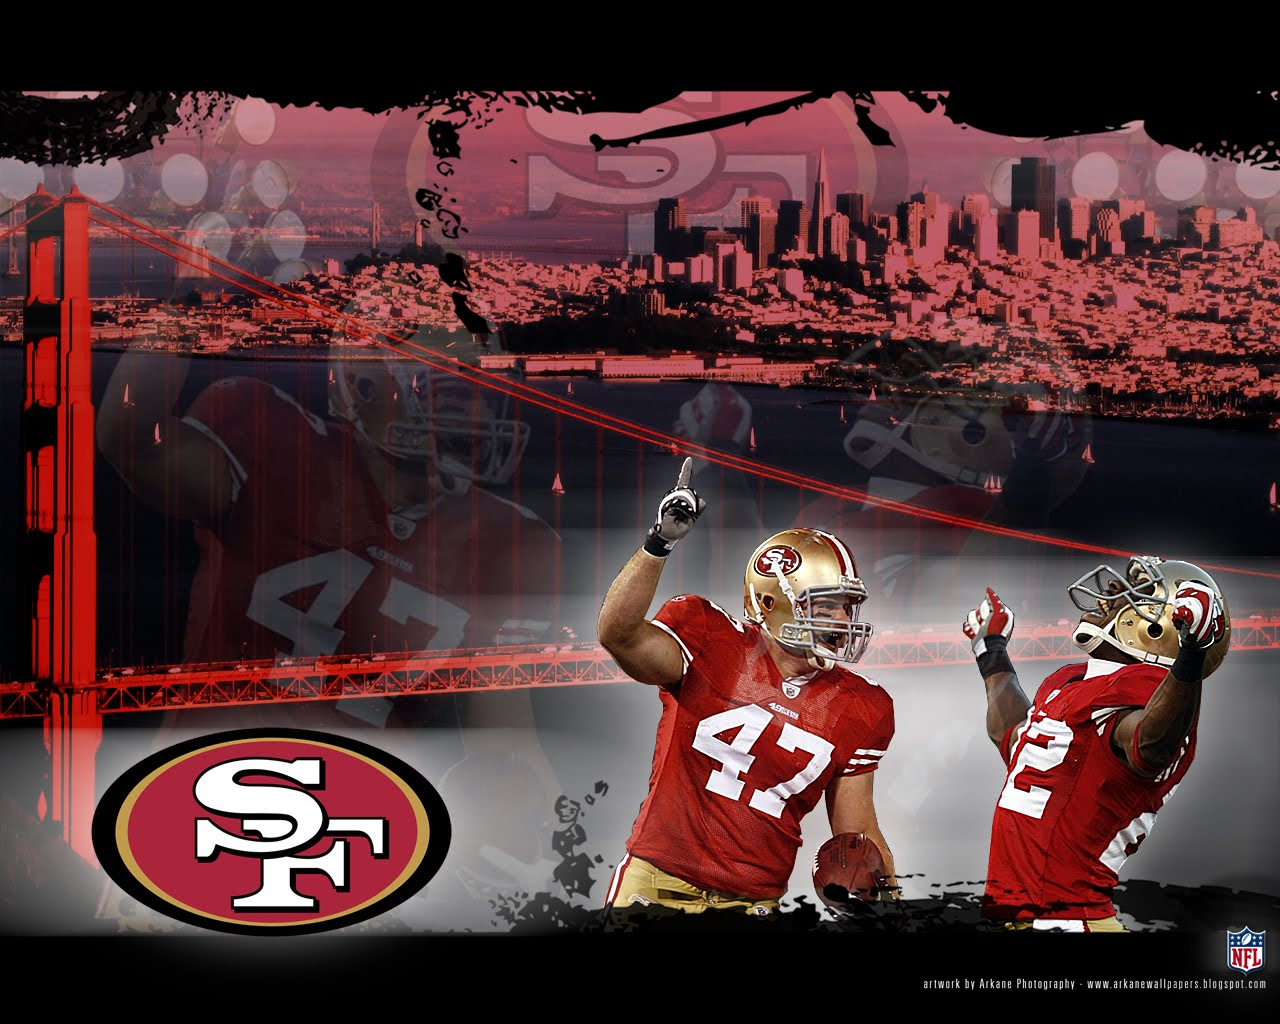 28 san francisco 49ers wallpaper c49ers free computer wallpapers voltagebd Choice Image